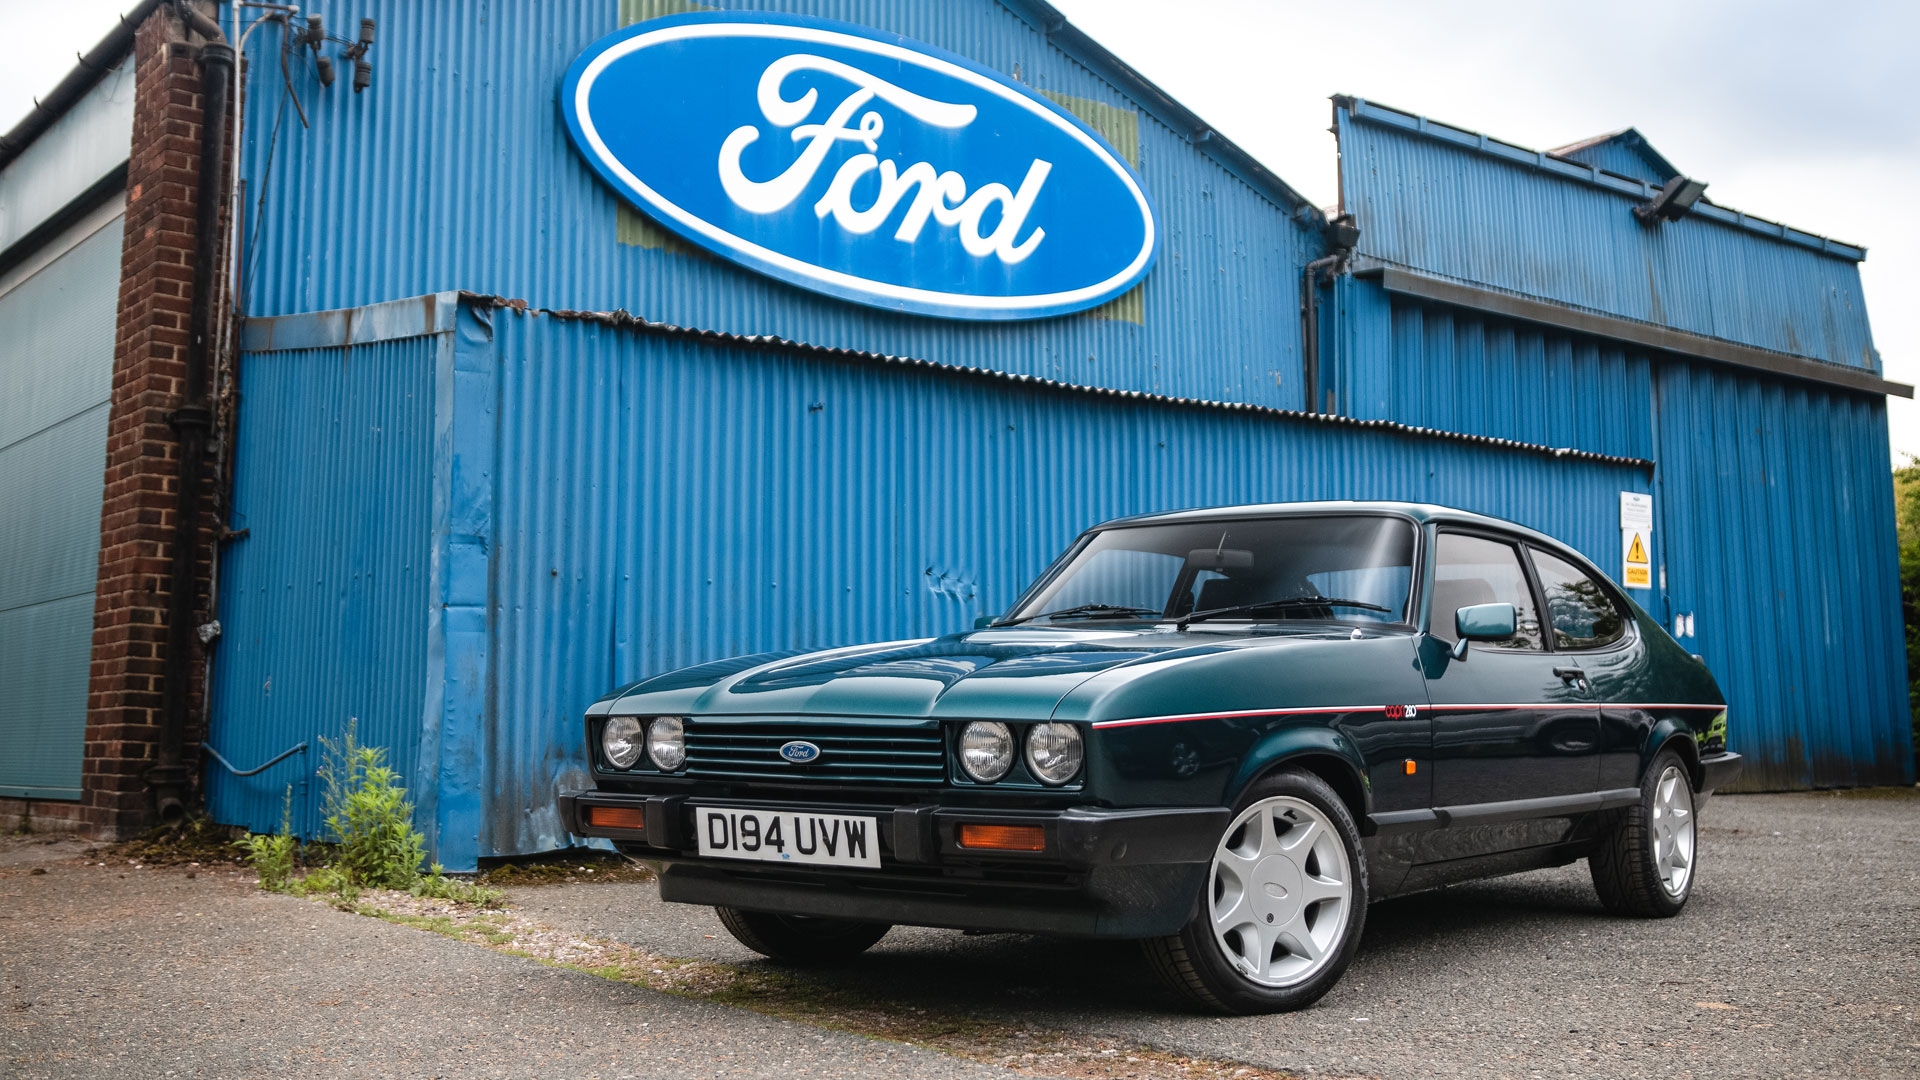 Ford Capri MK2 MK3 Rear View Mirror Covers may fit other variants